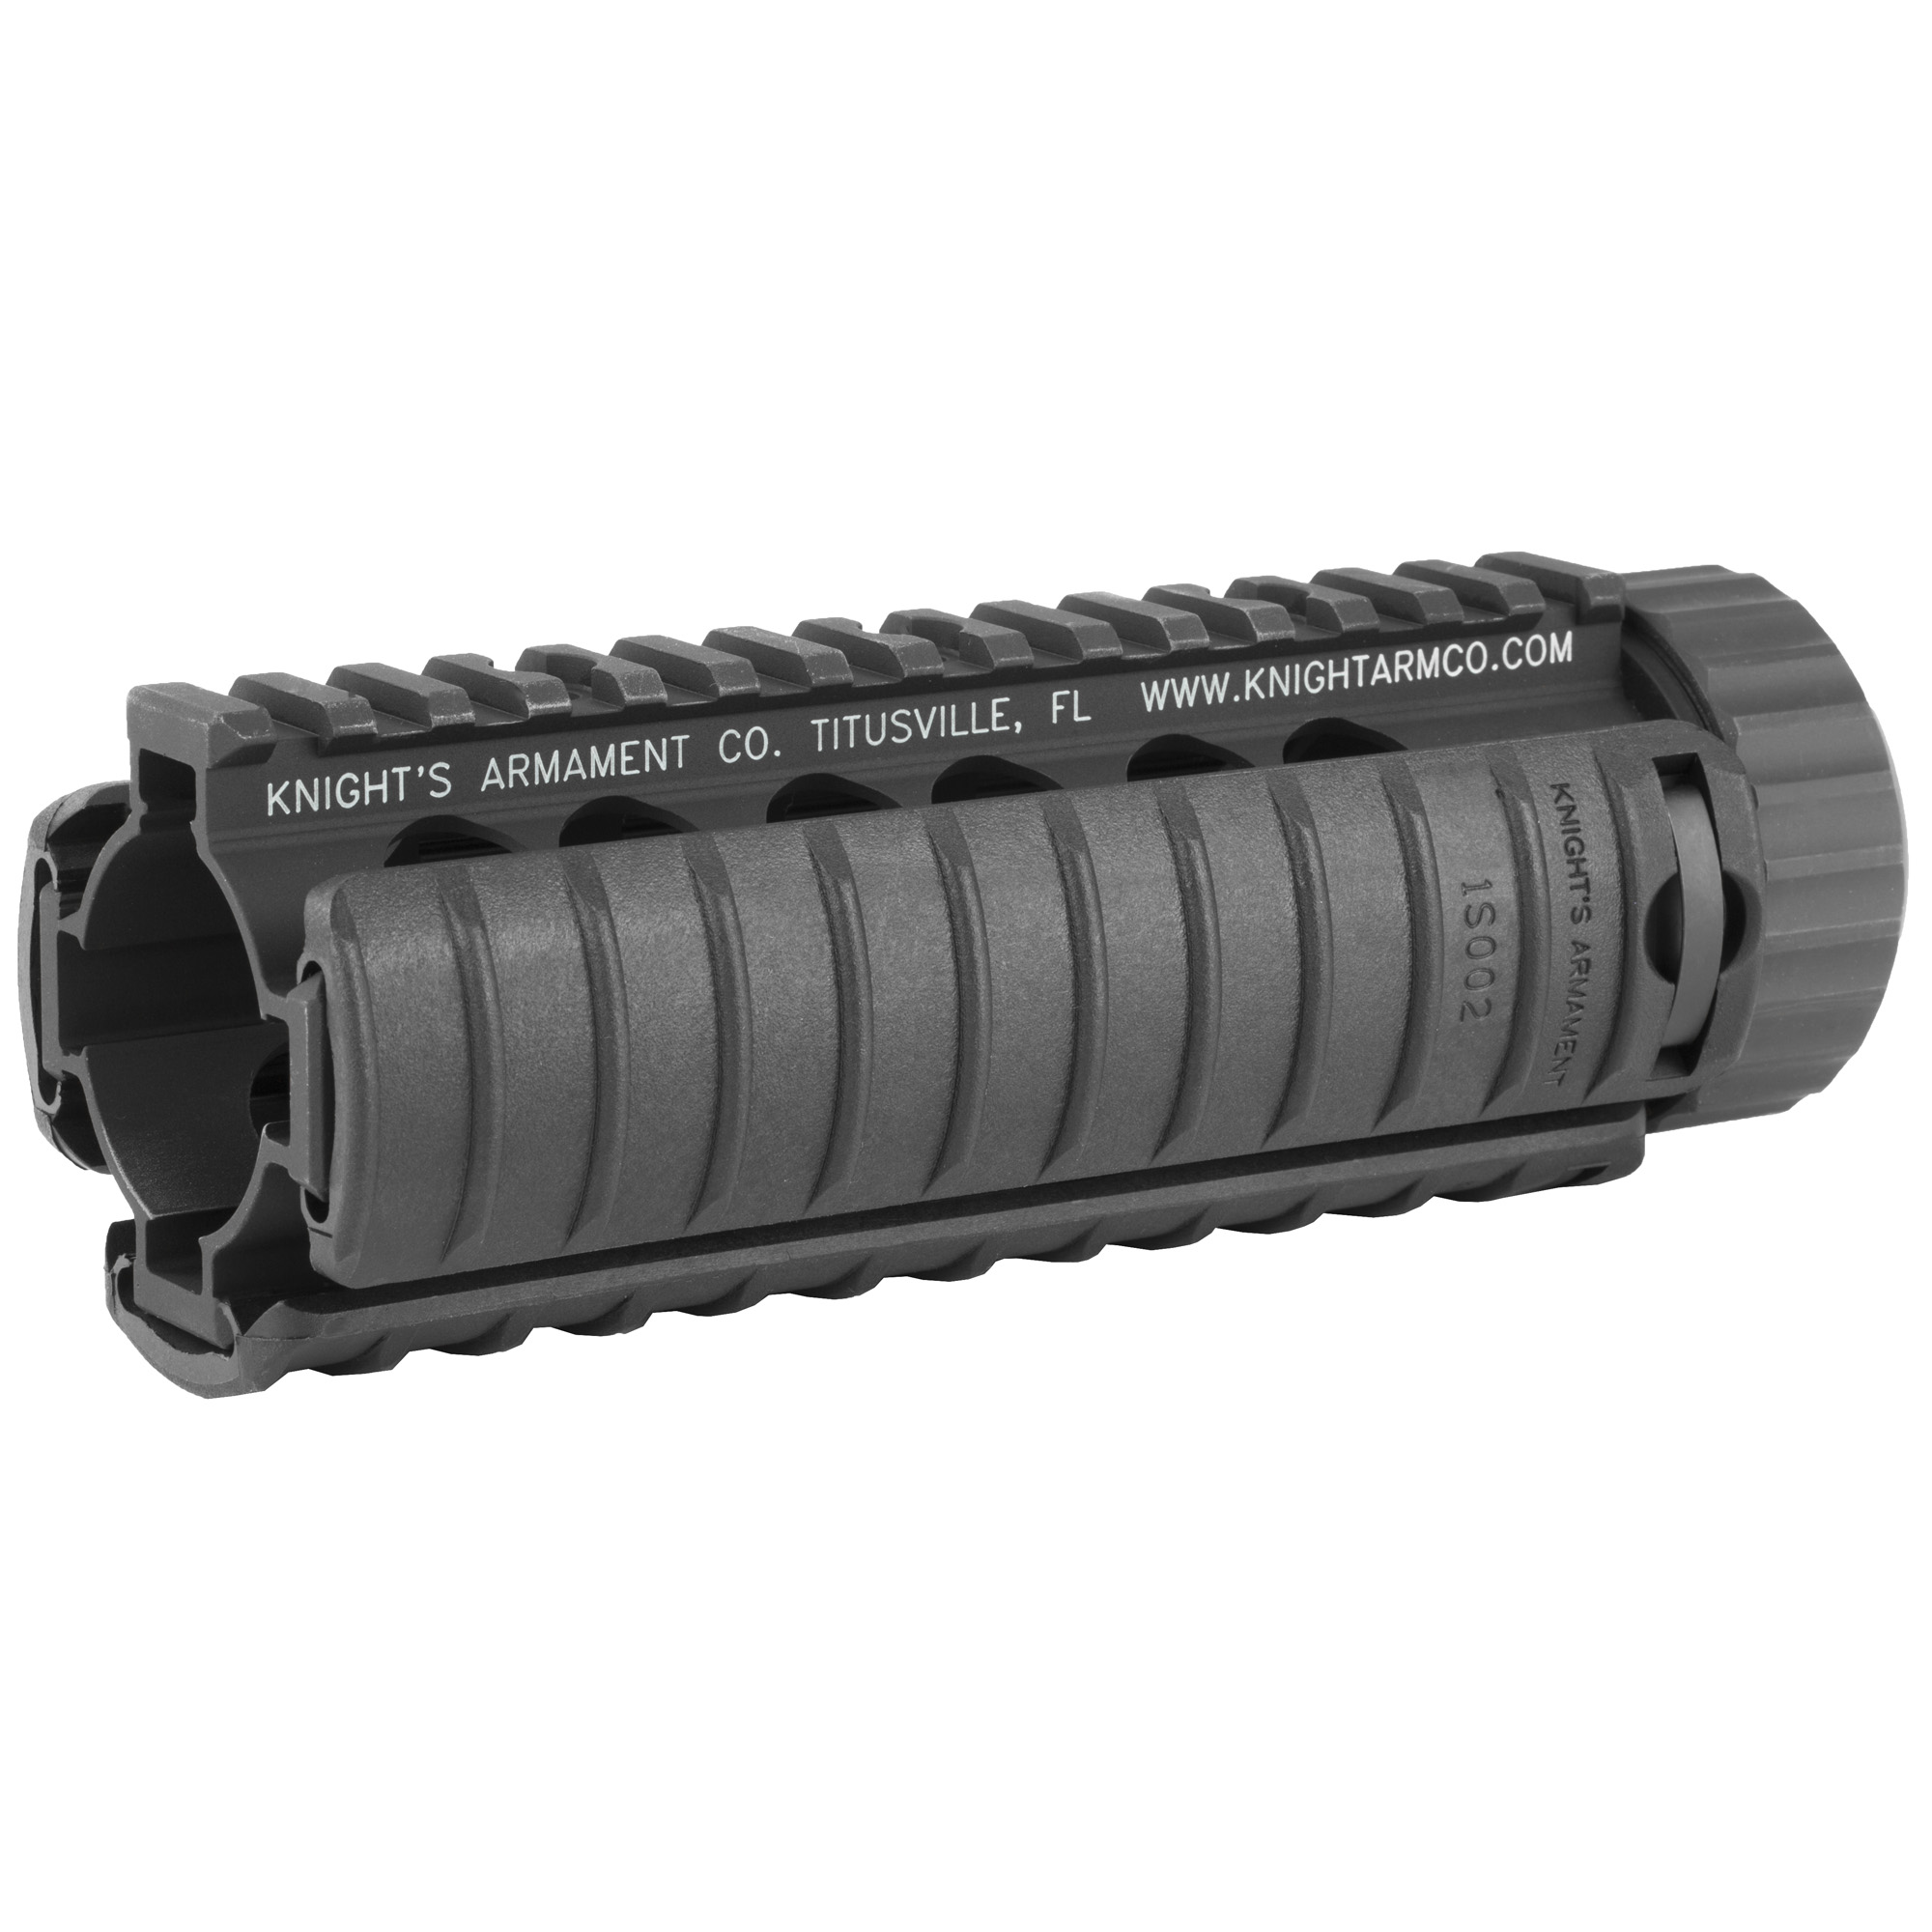 """The KAC Carbine Free Float RAS (Rail Adapter System) features full length mil-spec M1913 Picatinny rails at the 12-"""" 3-"""" 6-"""" and 9 o'clock positions"""" making it compatible with any number of rail-mounted tactical accessories. The rail free floats the barrel"""" allowing for consistent barrel harmonics upon firing"""" and thus increased accuracy potential. Includes three KAC 11 Rib Rail Panels."""